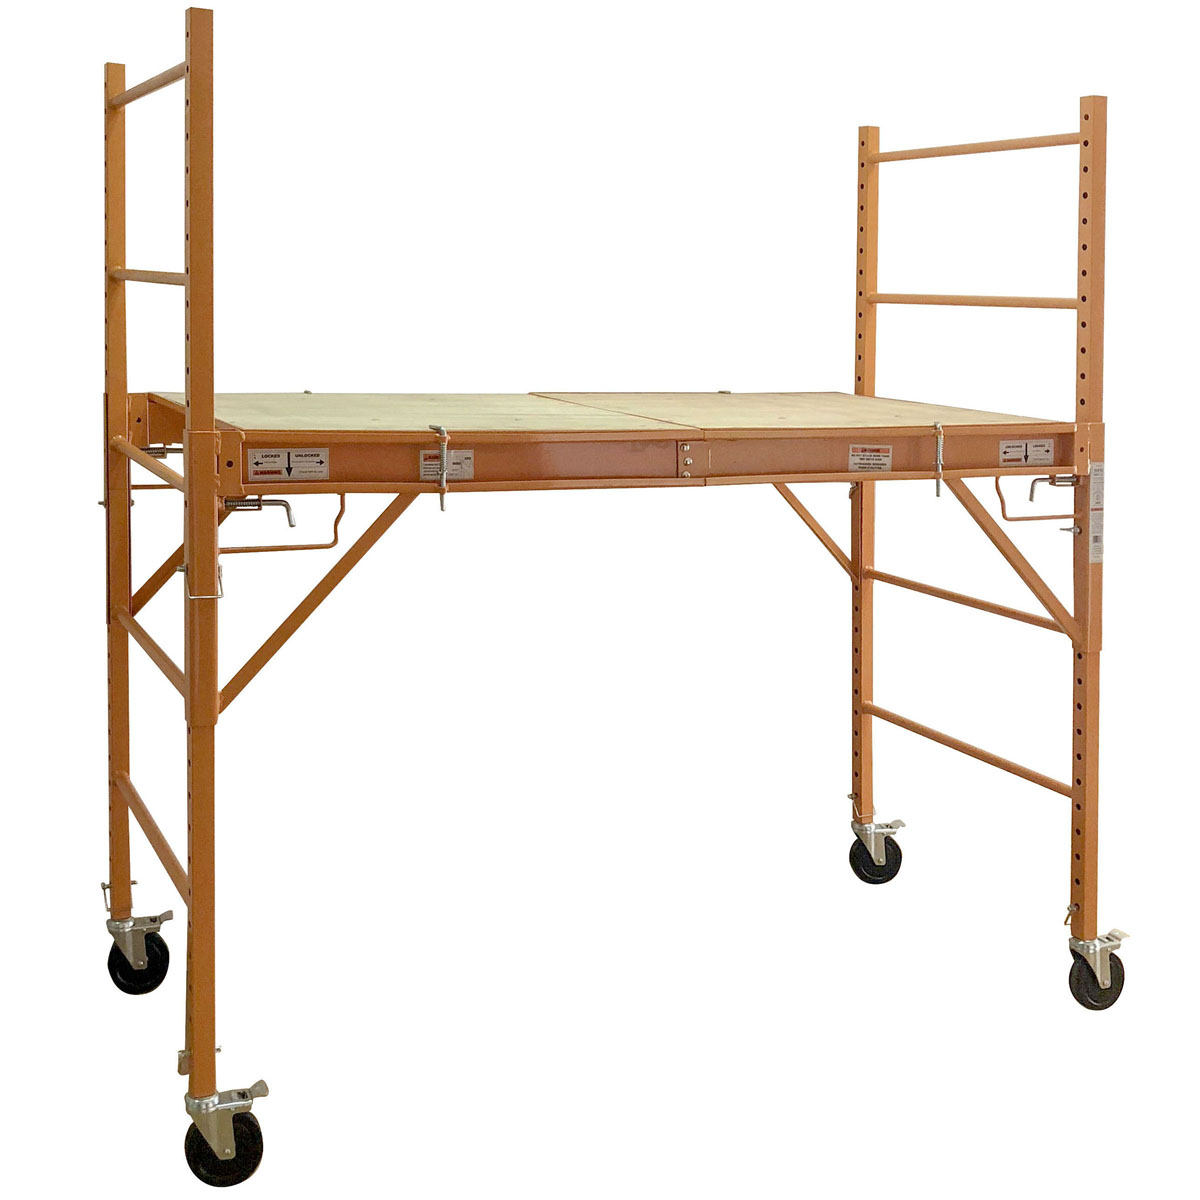 3-in-1 Take Apart Adjustable Rolling Scaffolding Utility Cart Work Bench, 6 ft. x. 2.5 ft. x 6.2 ft.